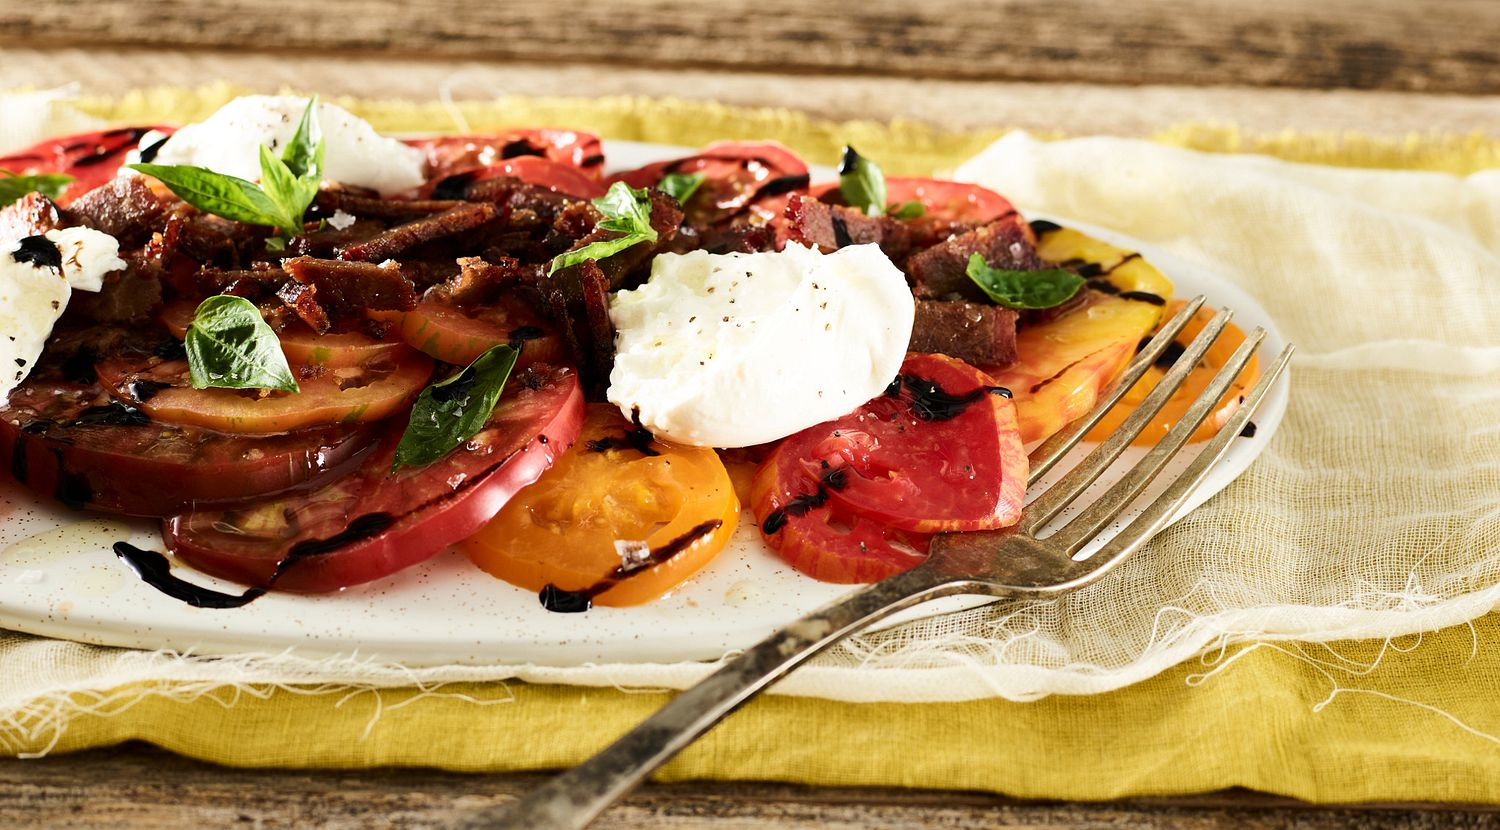 Crispy Beef Brisket and Heirloom Tomatoes with Burrata and Basil Oil